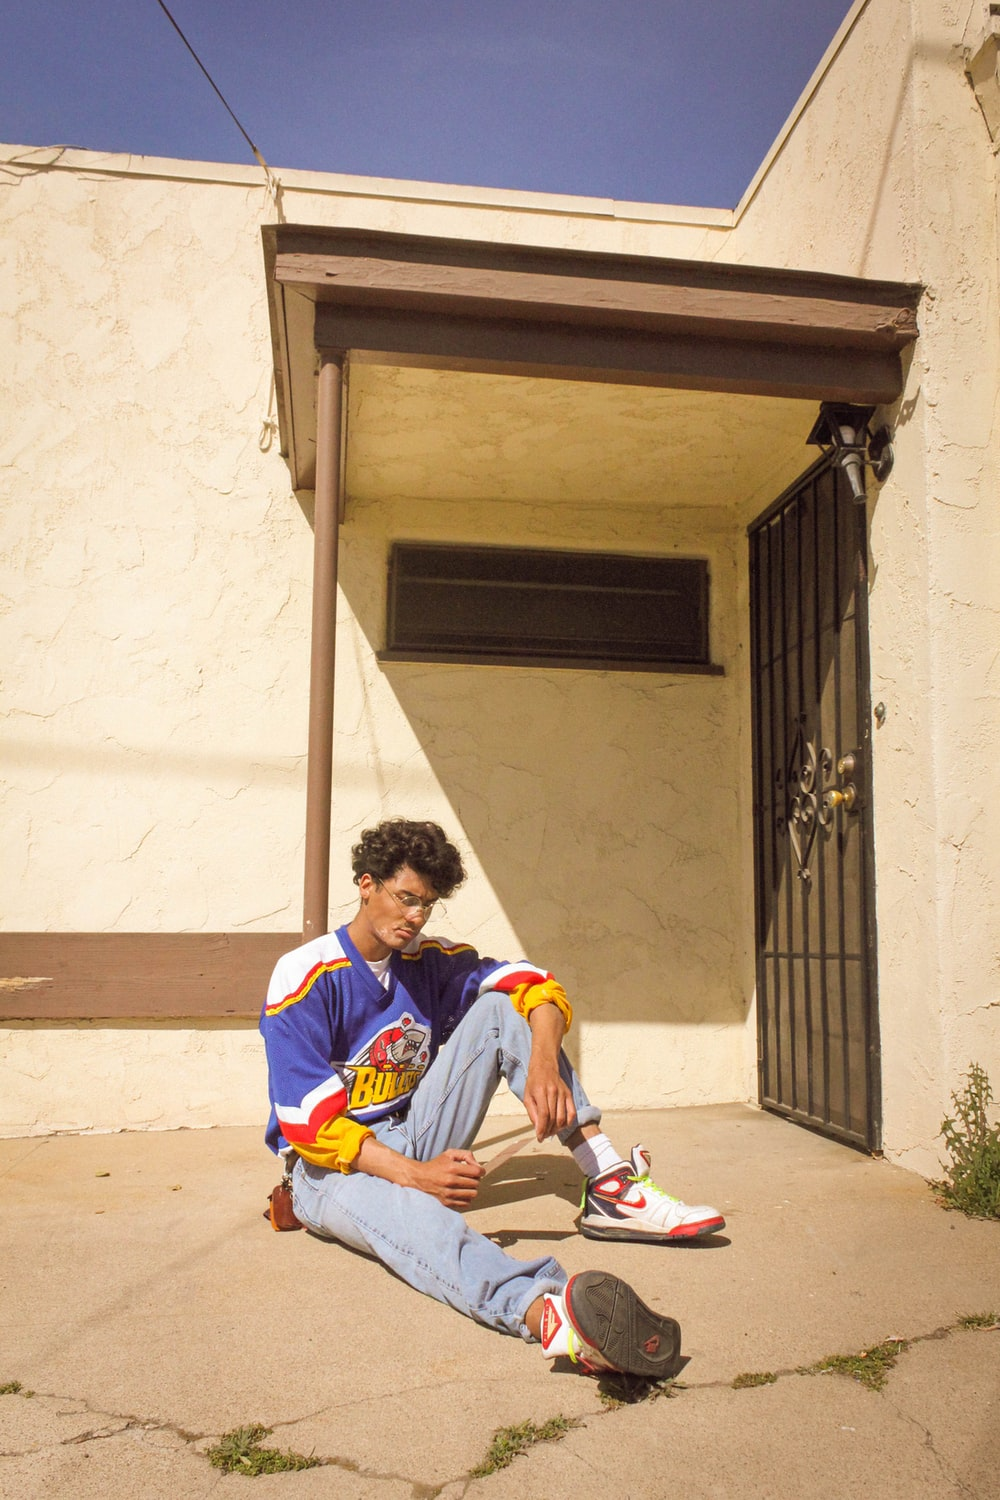 man in blue and white long sleeve shirt sitting on brown concrete stairs during daytime